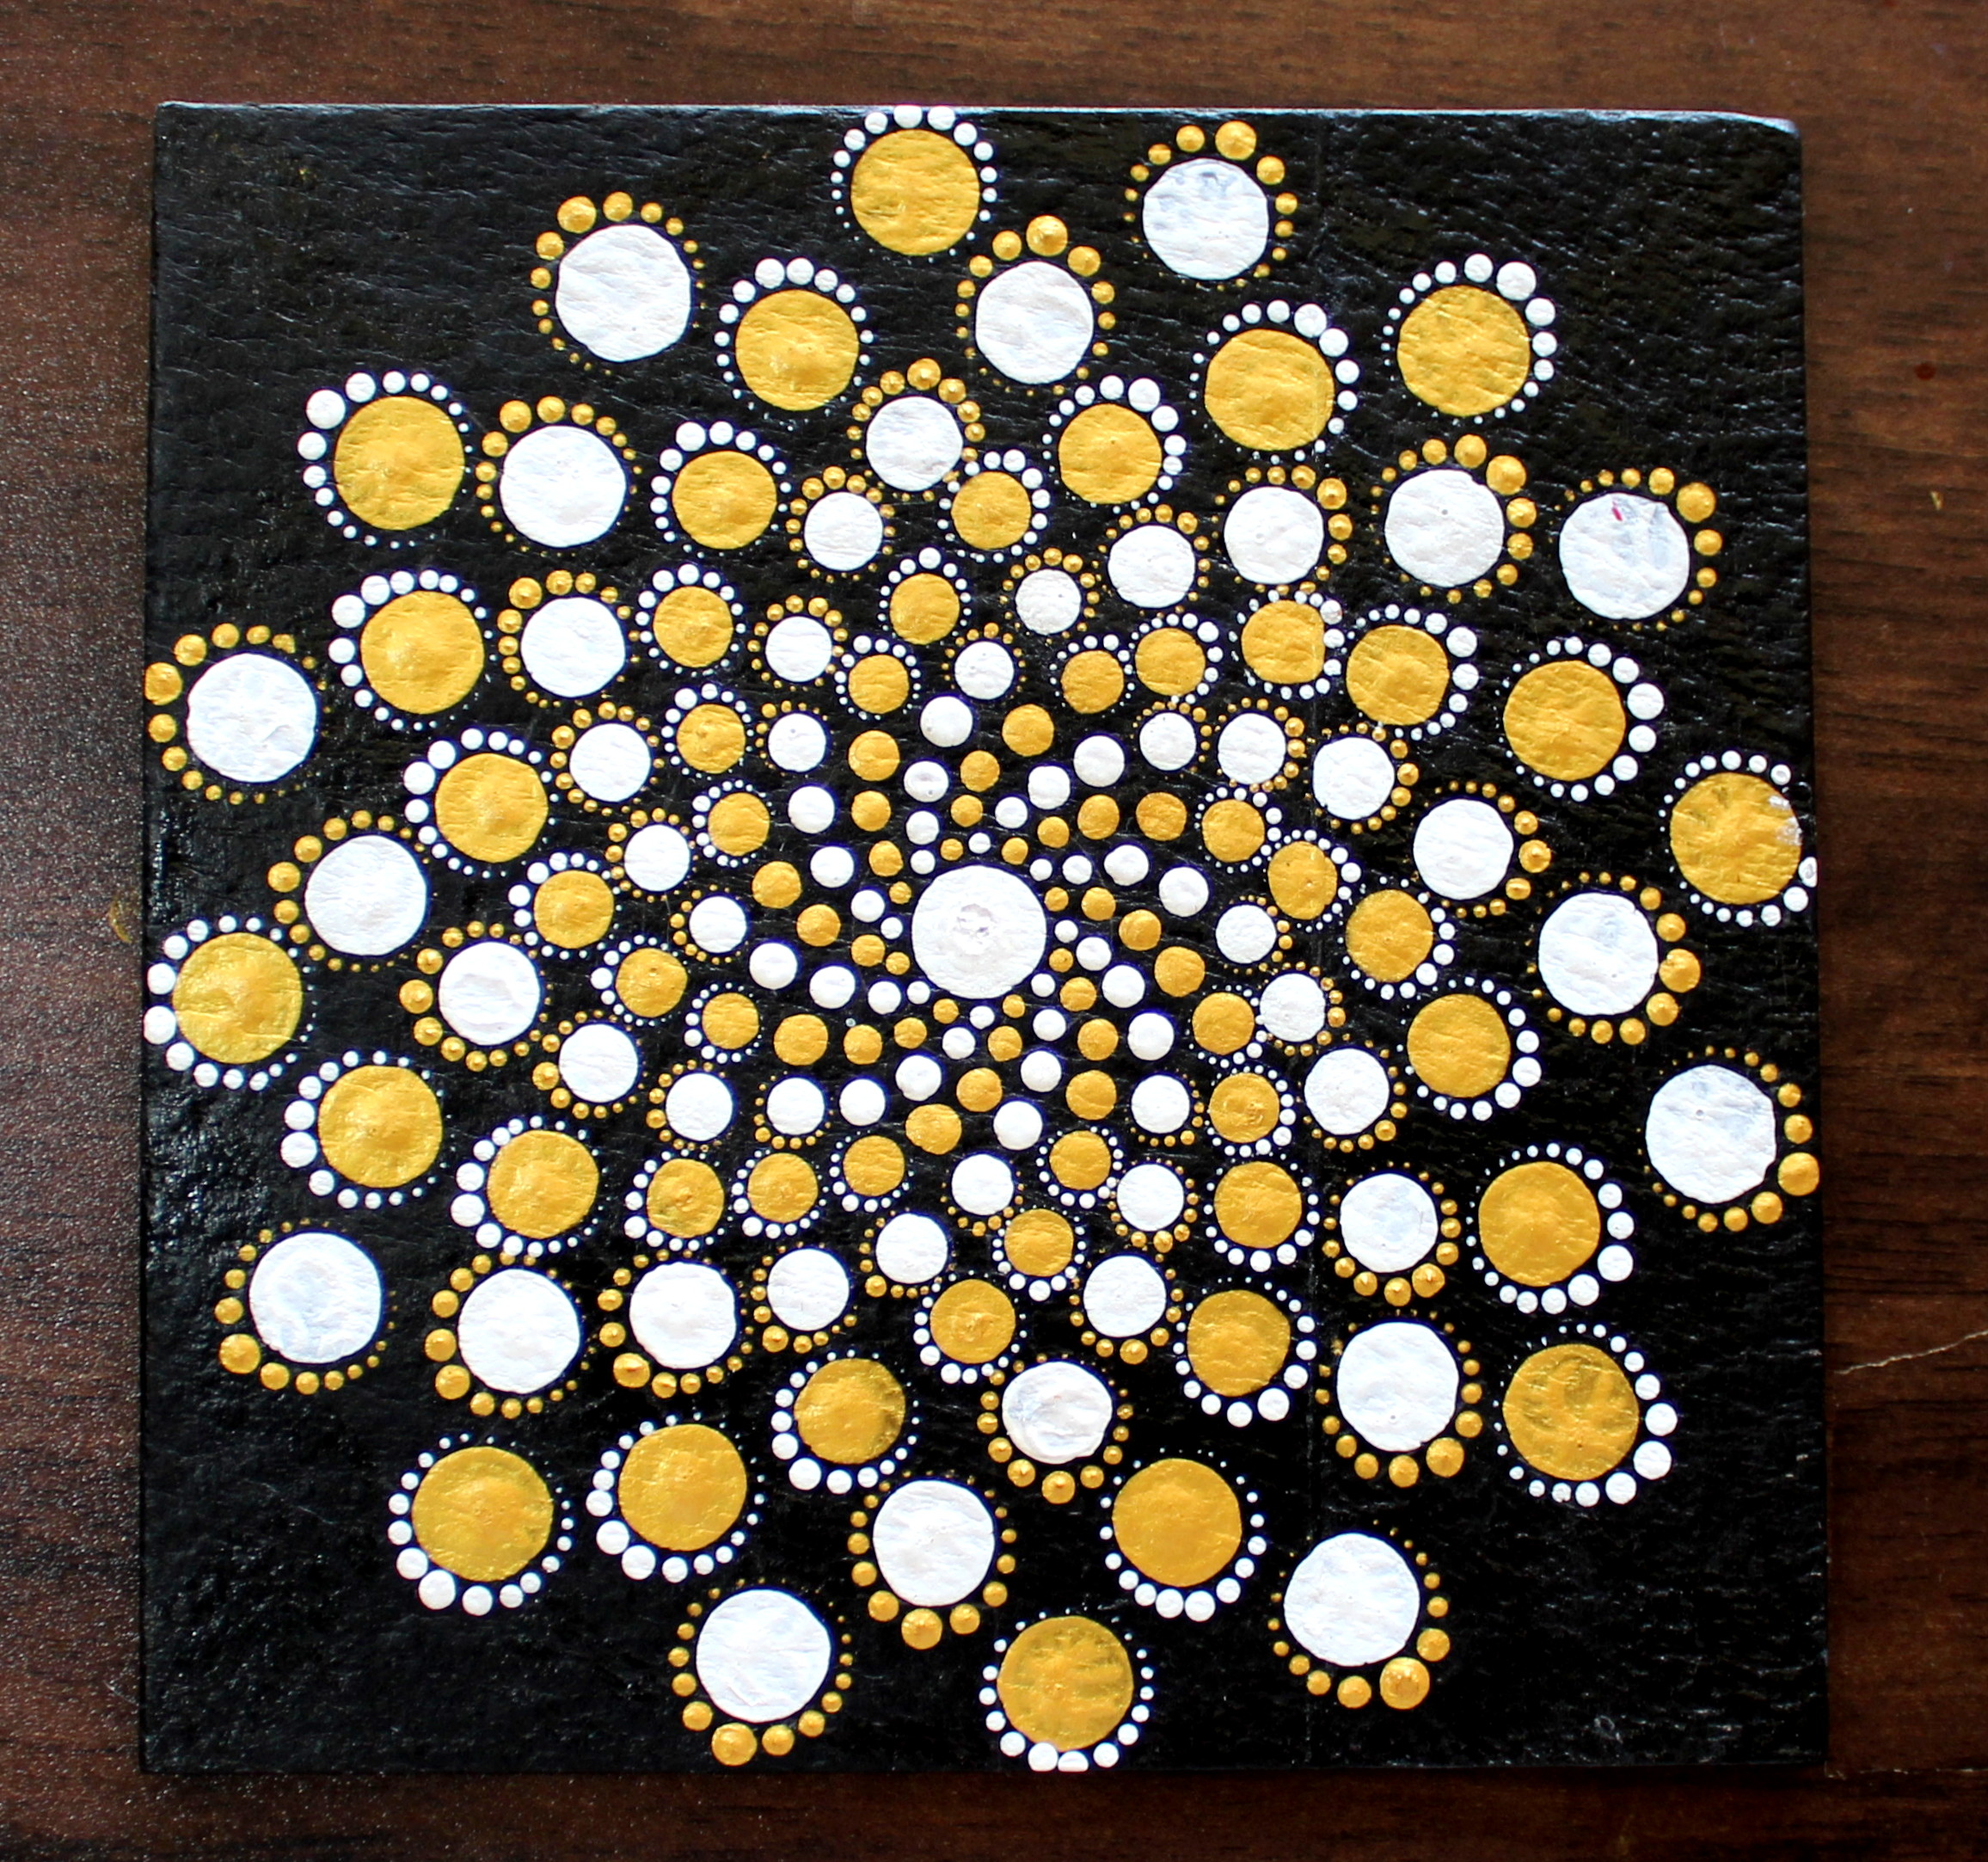 MANDALA DOT ART FOR BEGINNERS – CREATIVE ART